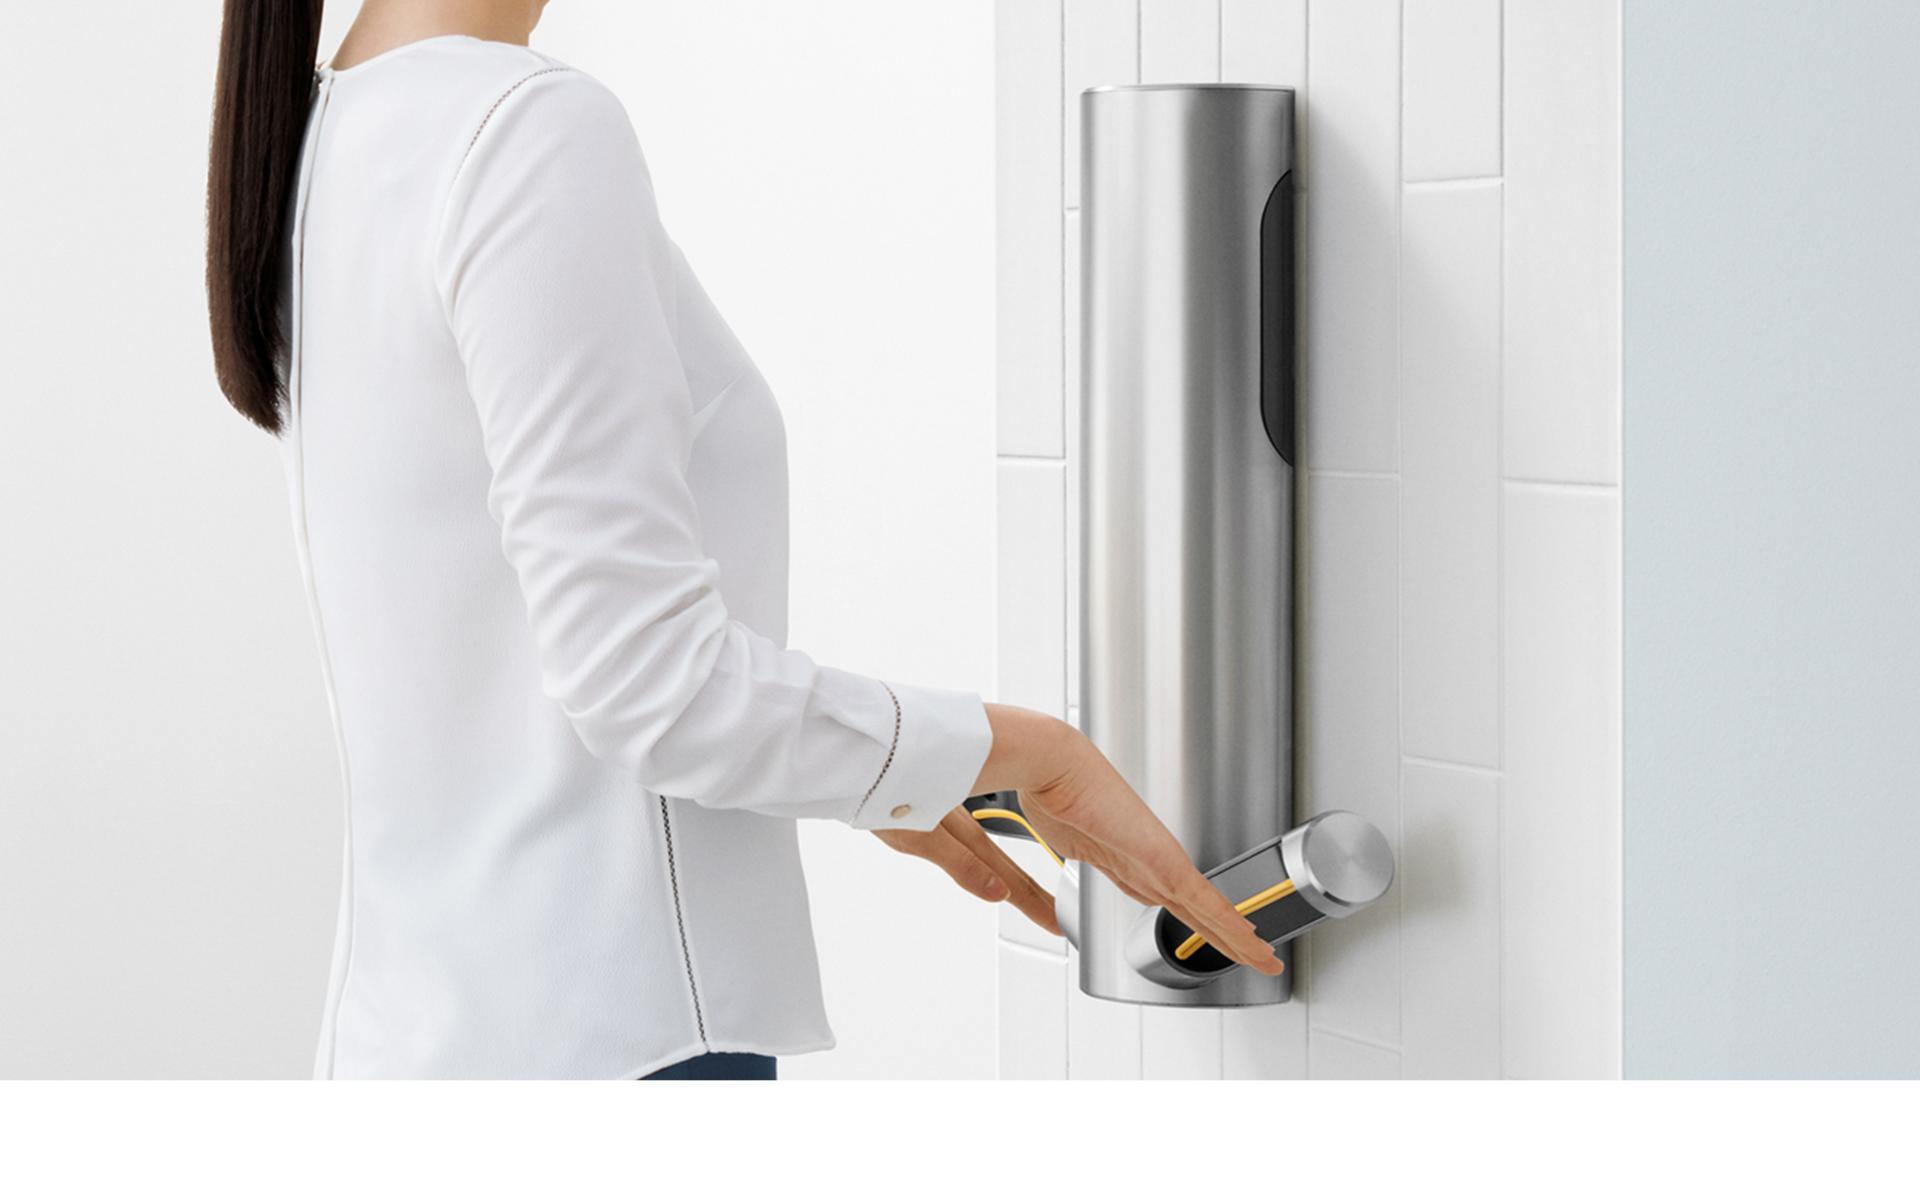 Woman drying hands at Dyson Airblade 9kJ